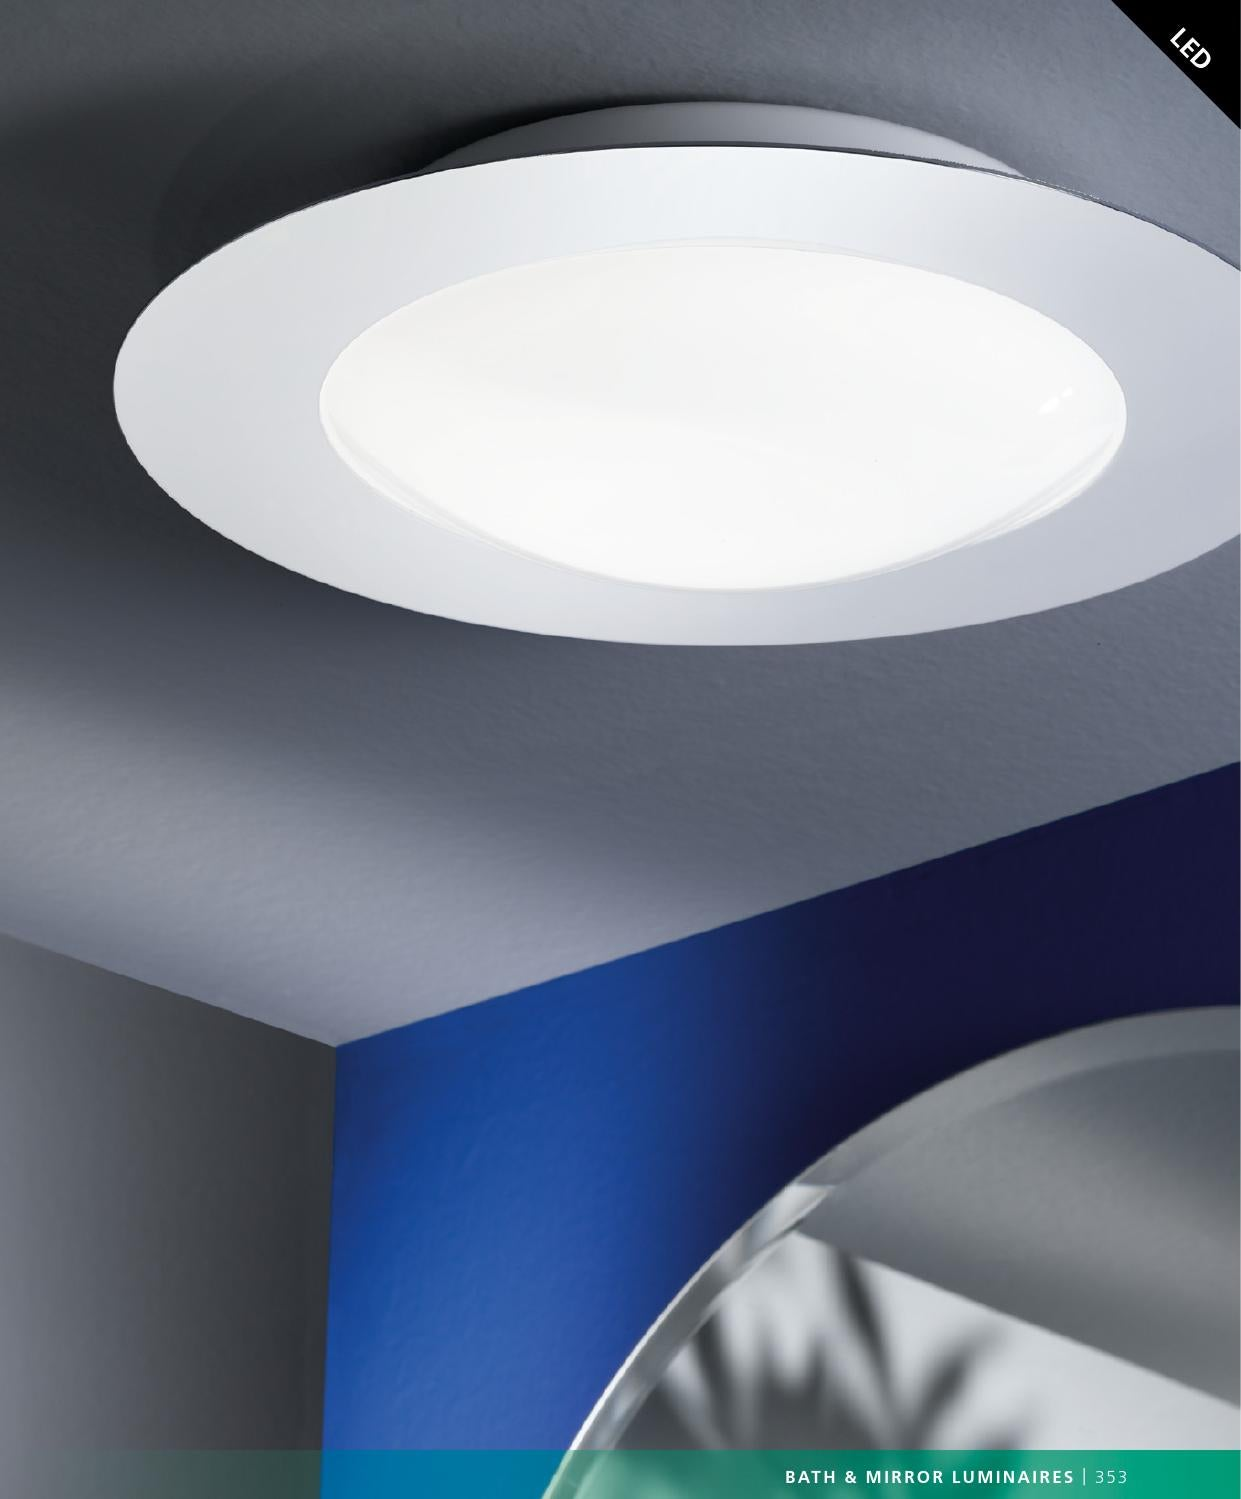 Led Unterbauleuchte Ip54 Eglo Catalogue 13 14 Part 2 By Kes Lighting Issuu